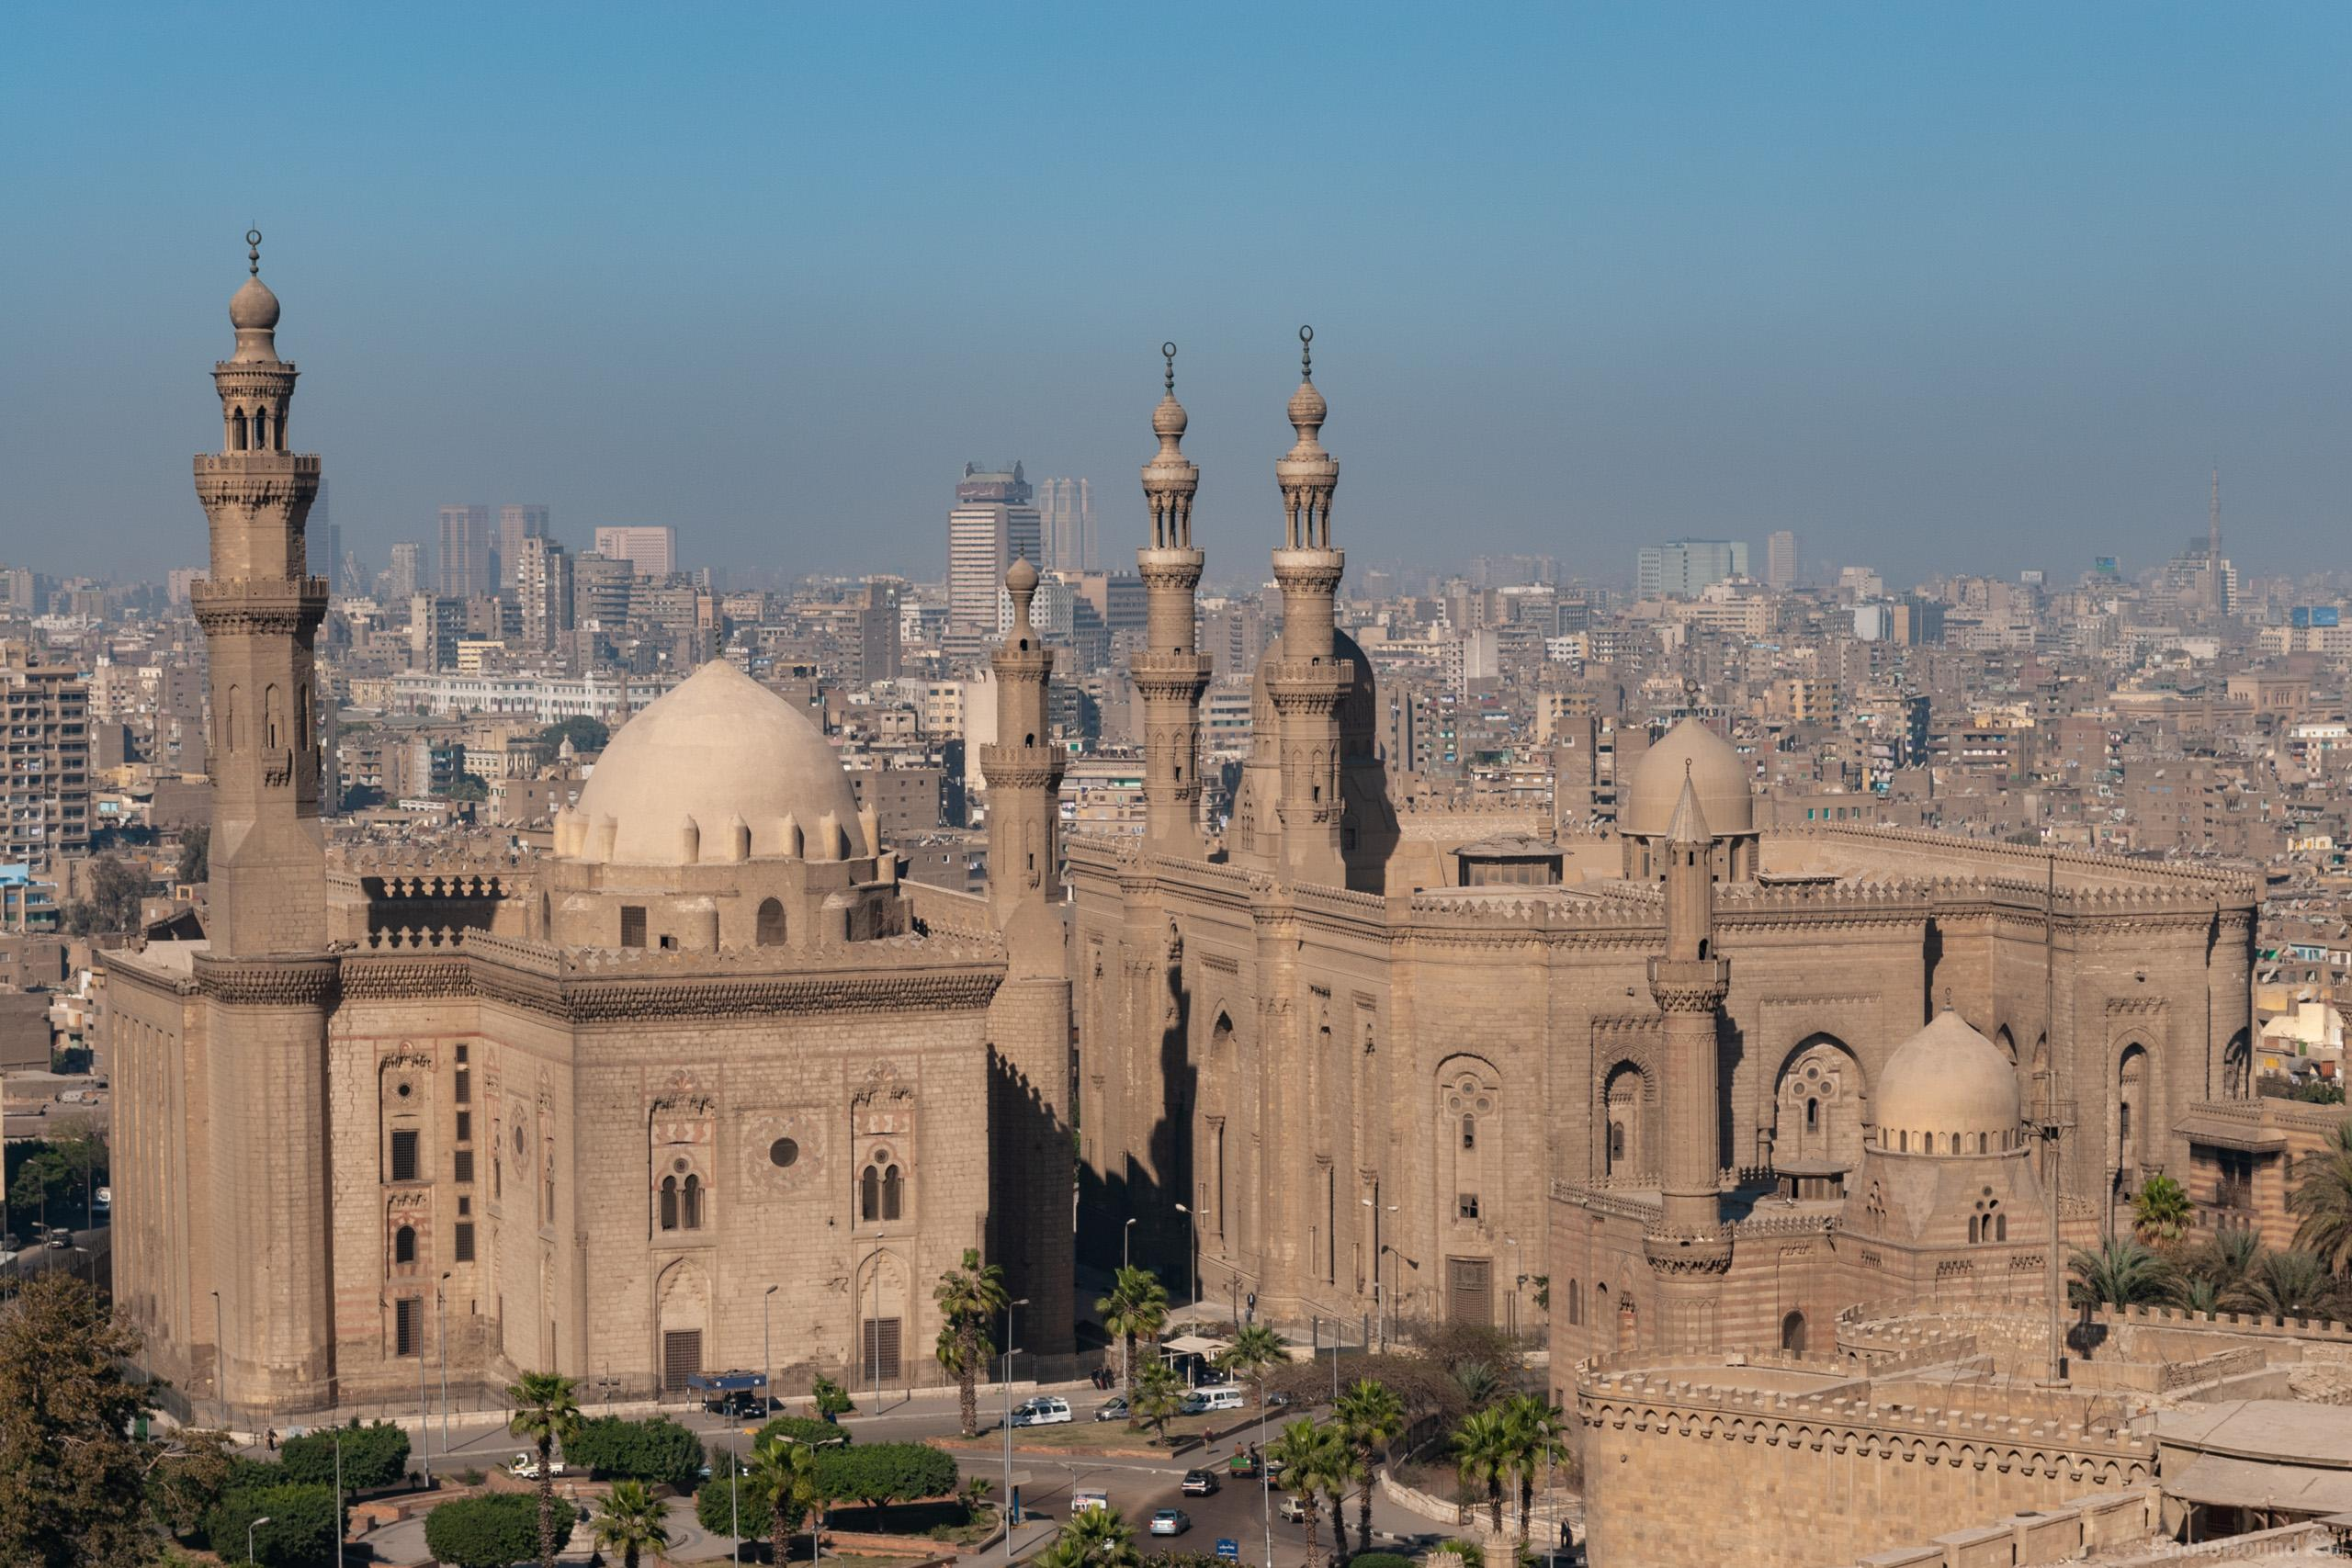 Views NE to the mosques of Sultan Hassan and Al-Rifai